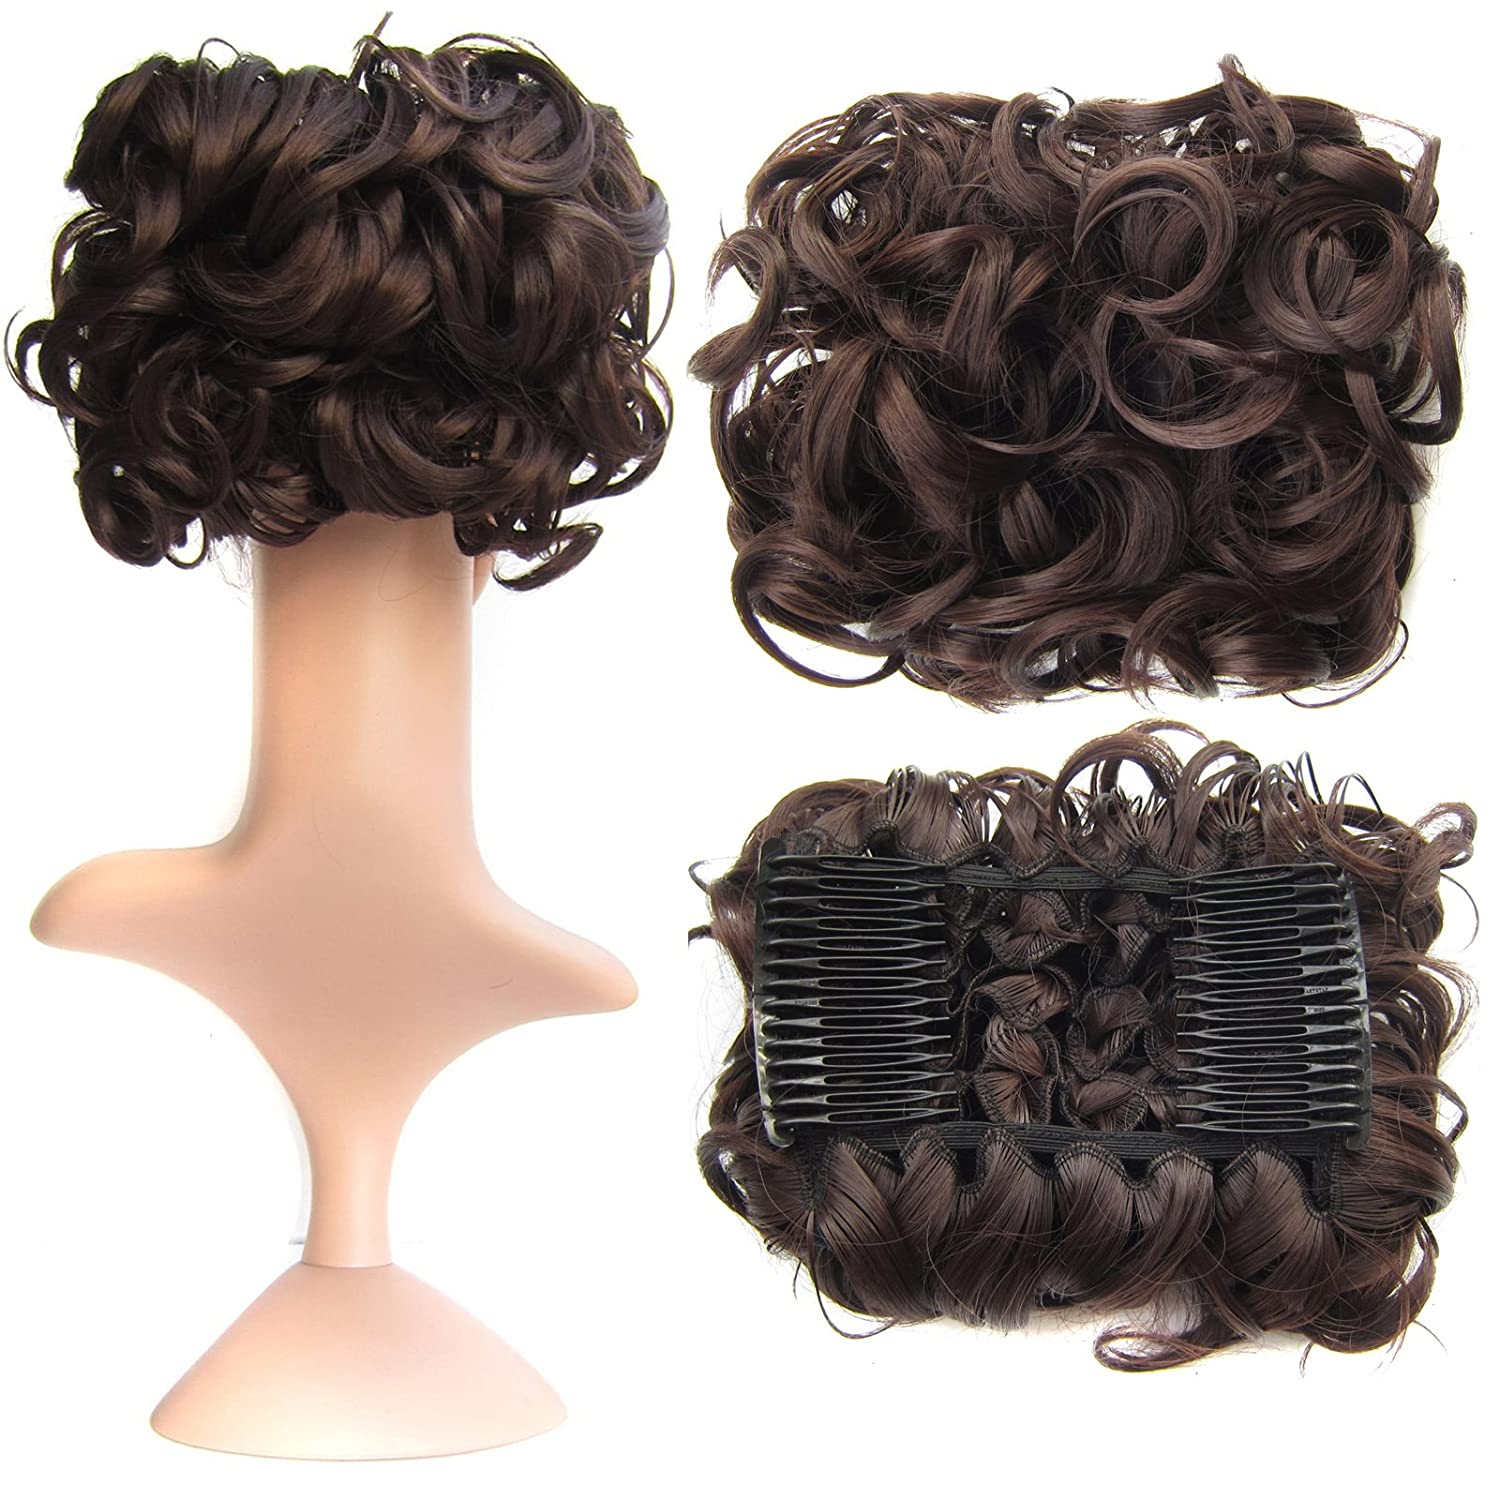 SWACC Short Messy Curly Dish Hair Bun Extension Easy Stretch hair Combs Clip in Ponytail Extension Scrunchie Chignon Tray Ponytail Hairpieces (Medium Ash Brown-8#) No Model